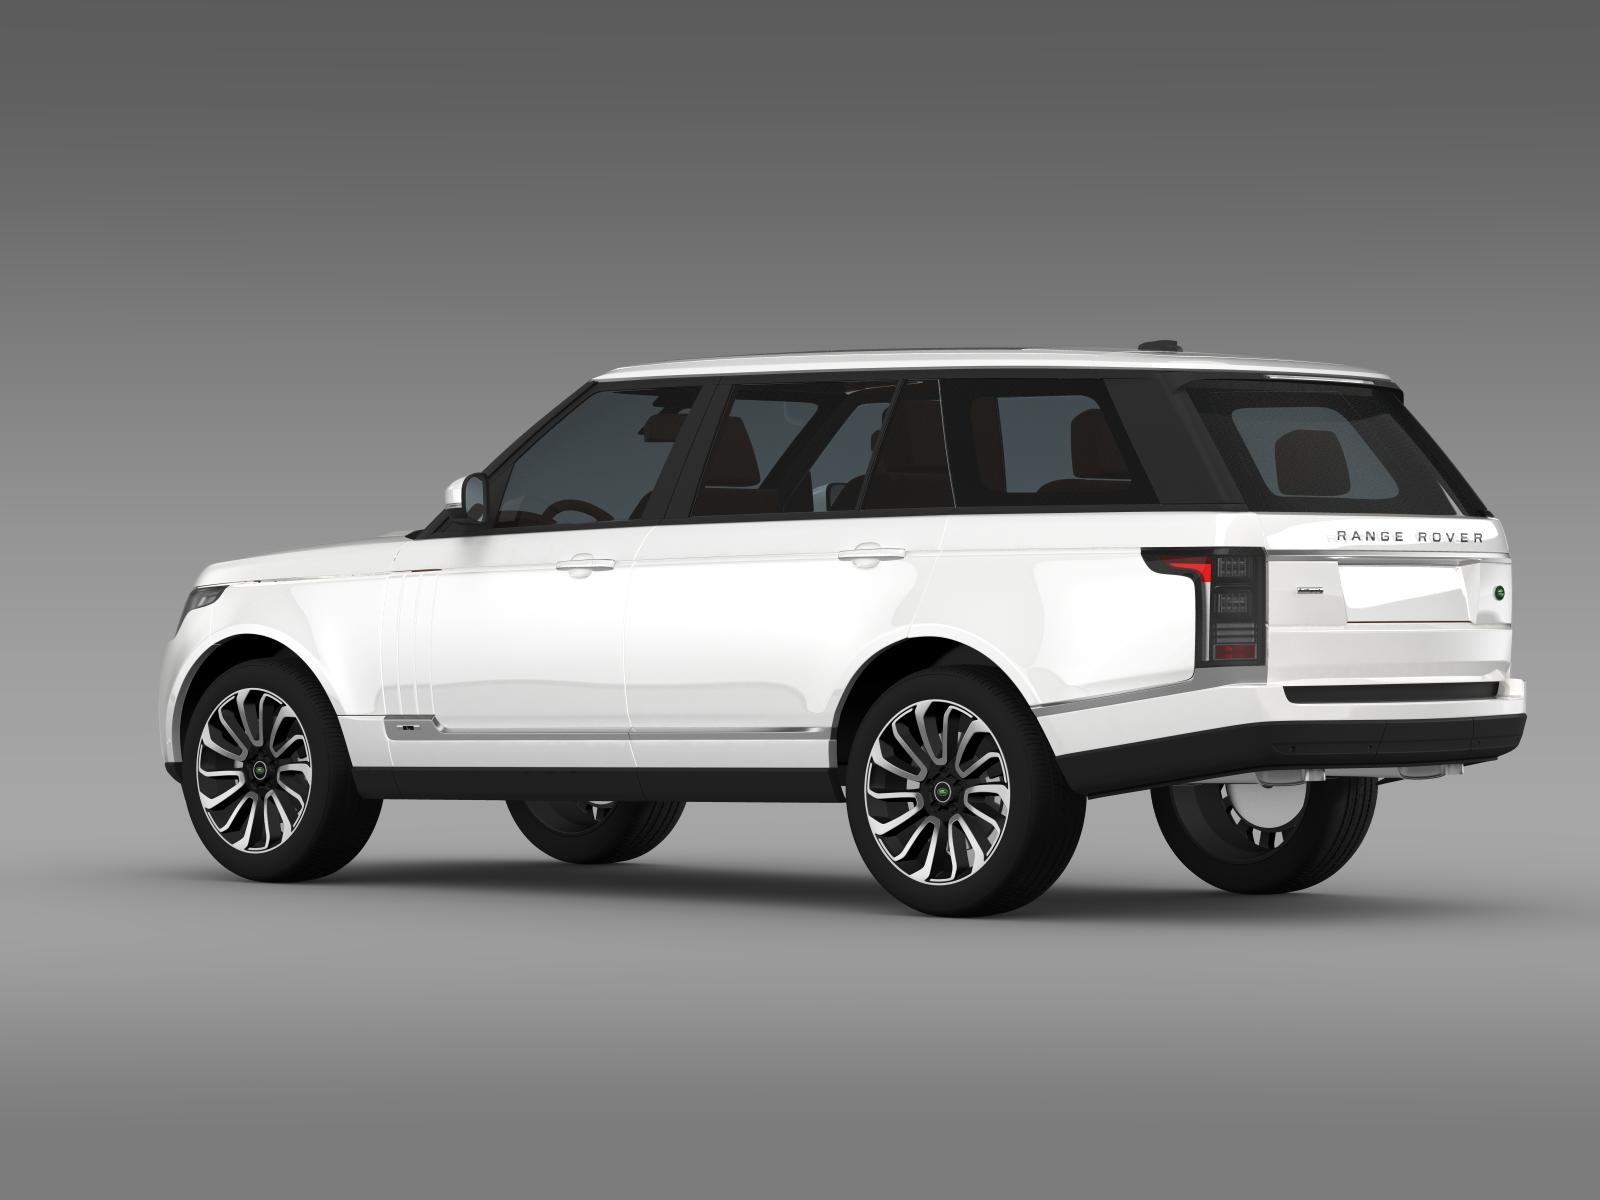 range rover autobiography lwb l405 2014 3d model buy range rover autobiography lwb l405 2014. Black Bedroom Furniture Sets. Home Design Ideas